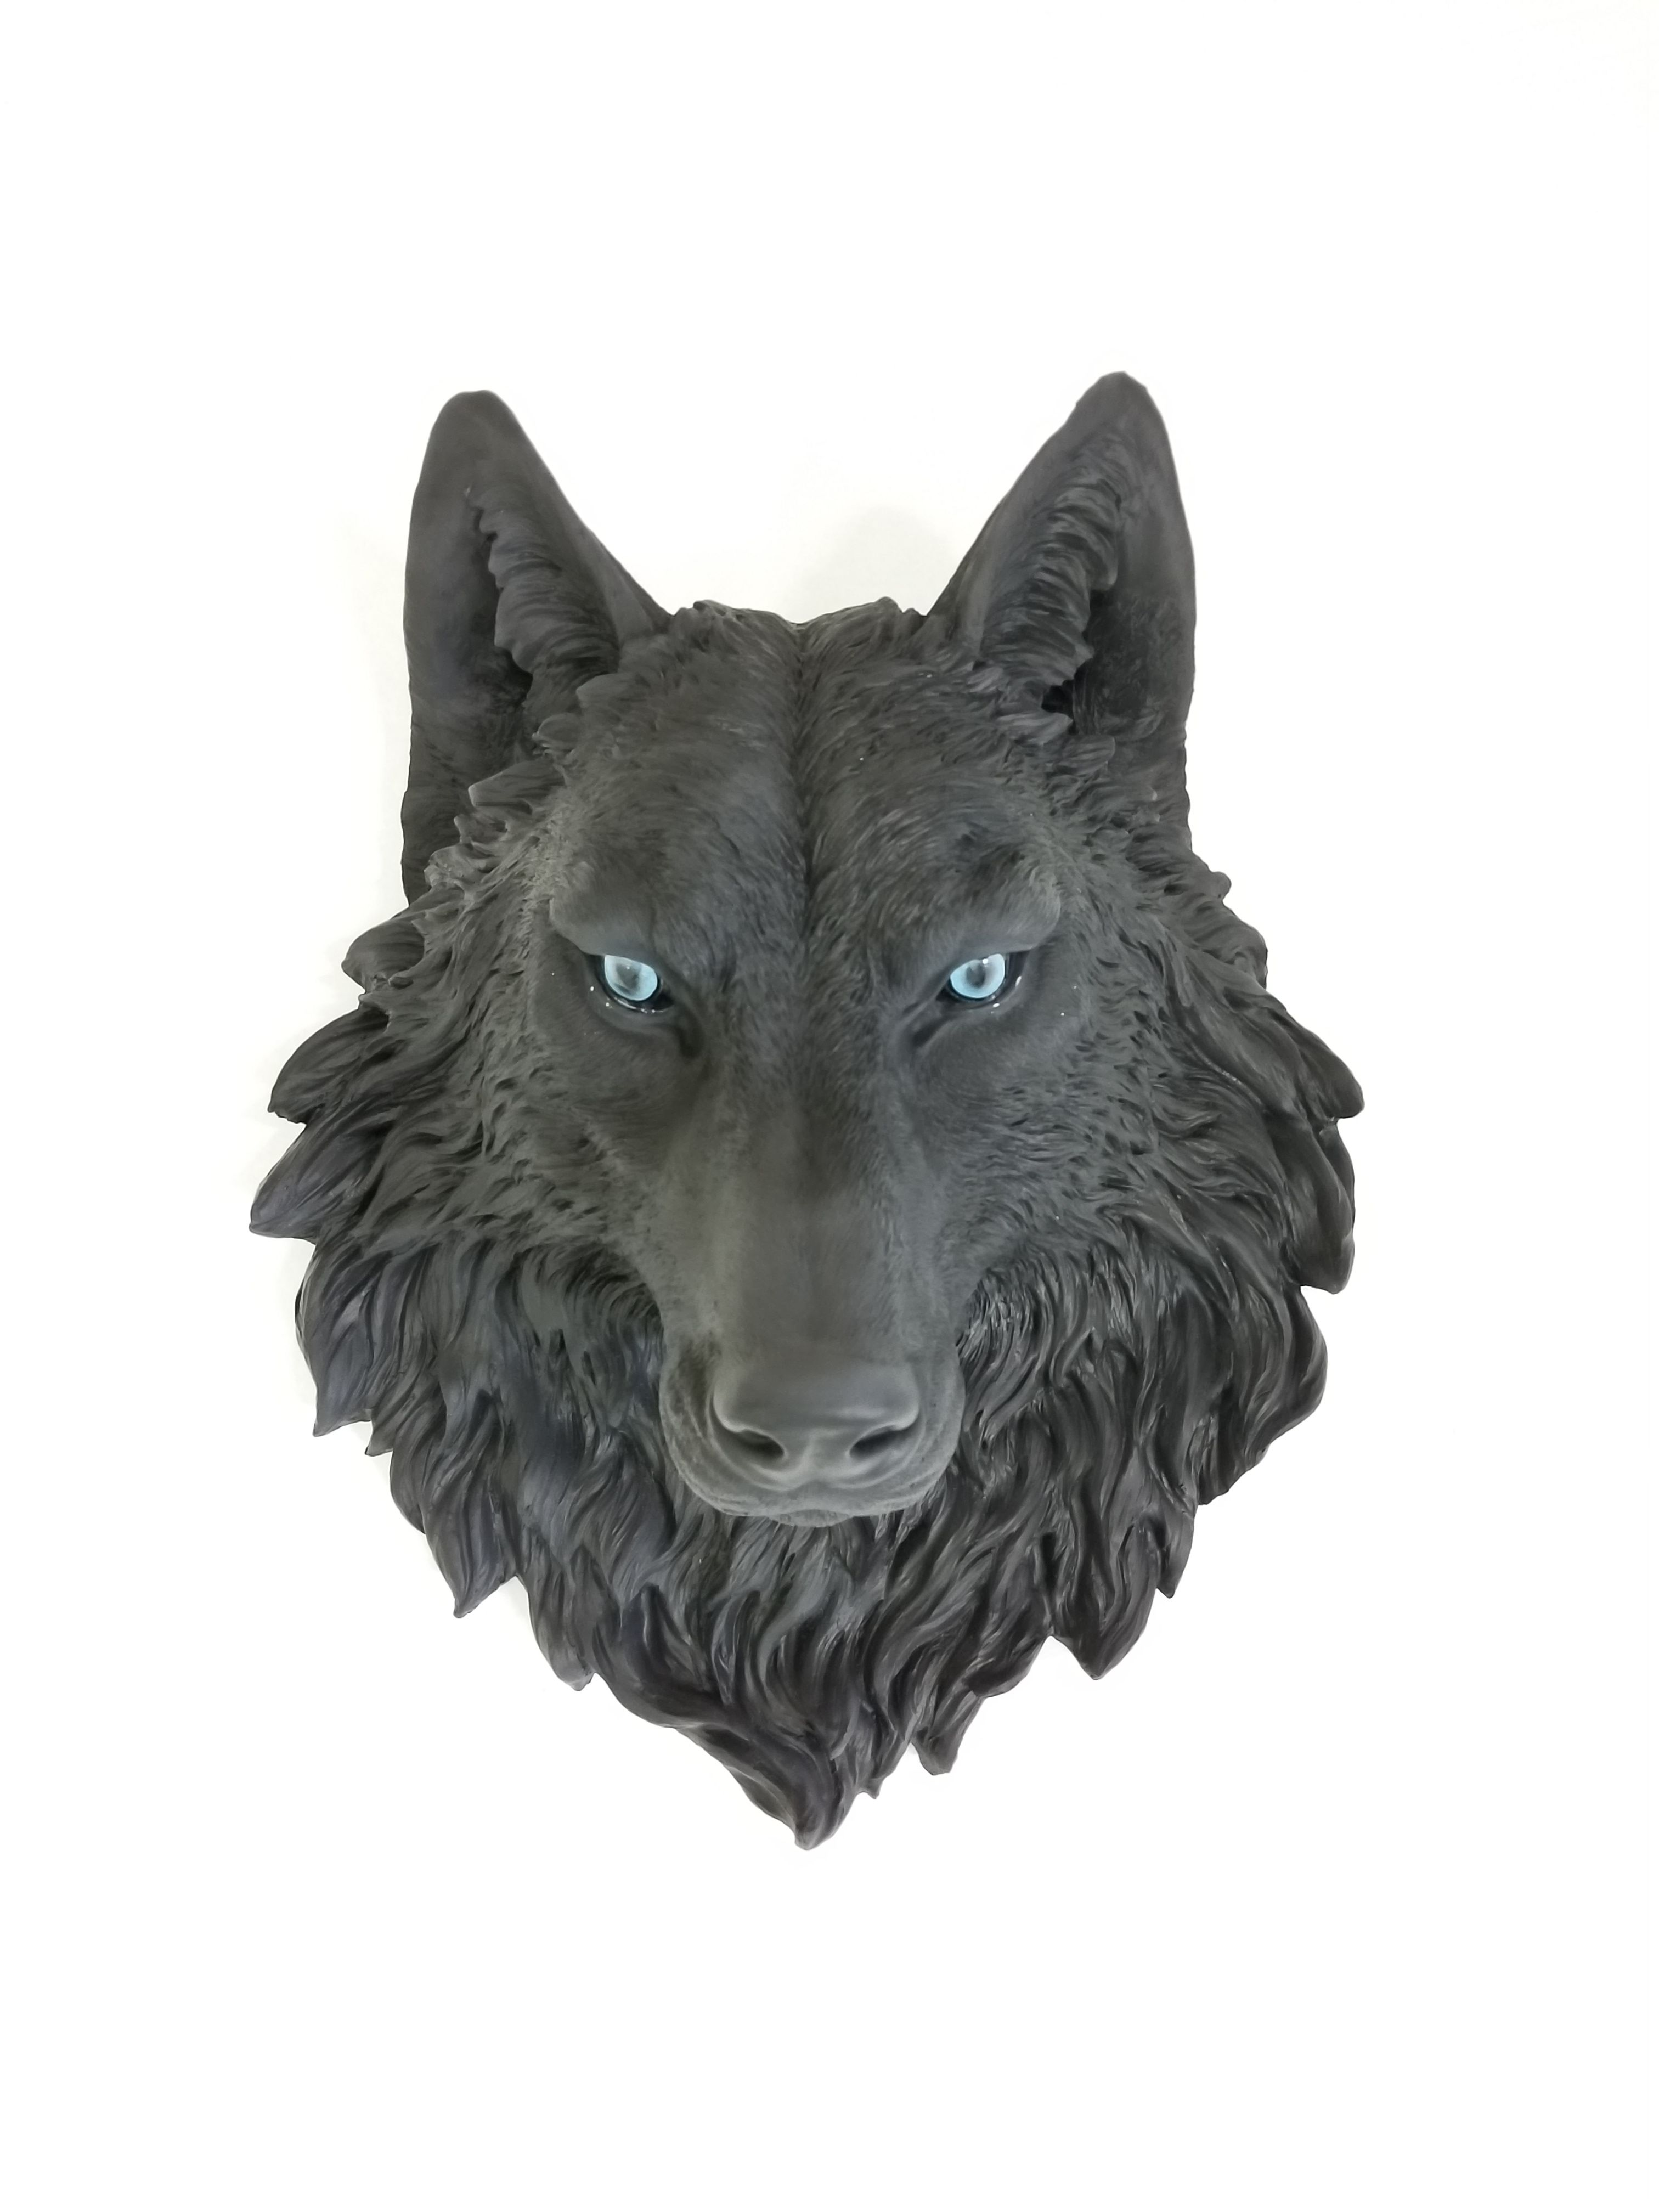 Pin by Shea Cahill on Ink   Wolf tattoos, Solid black ...  Solid Black Wolf